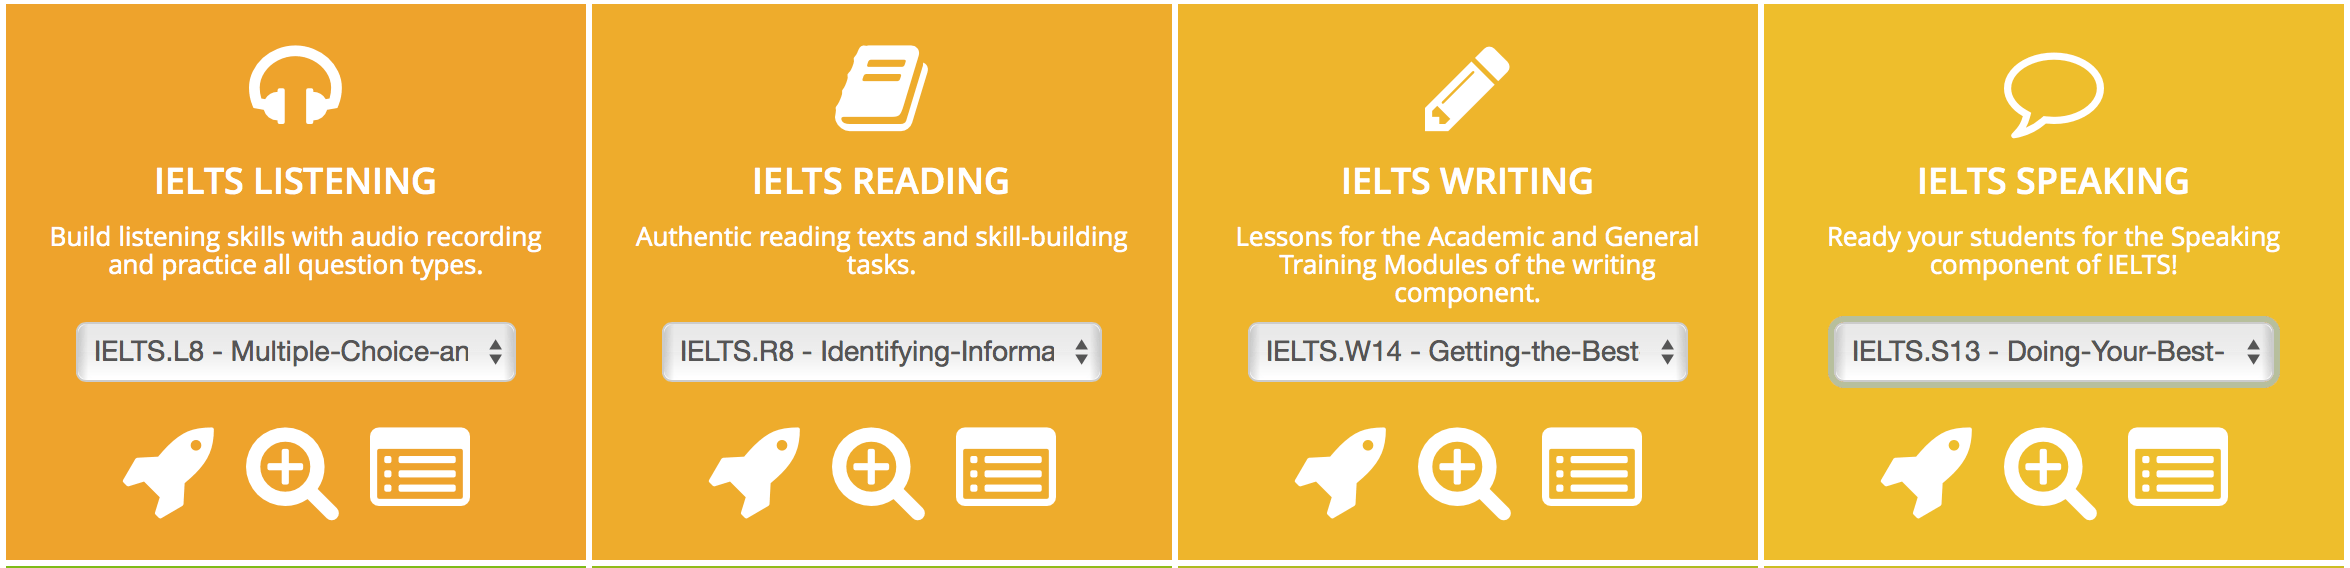 IELTS teaching materials